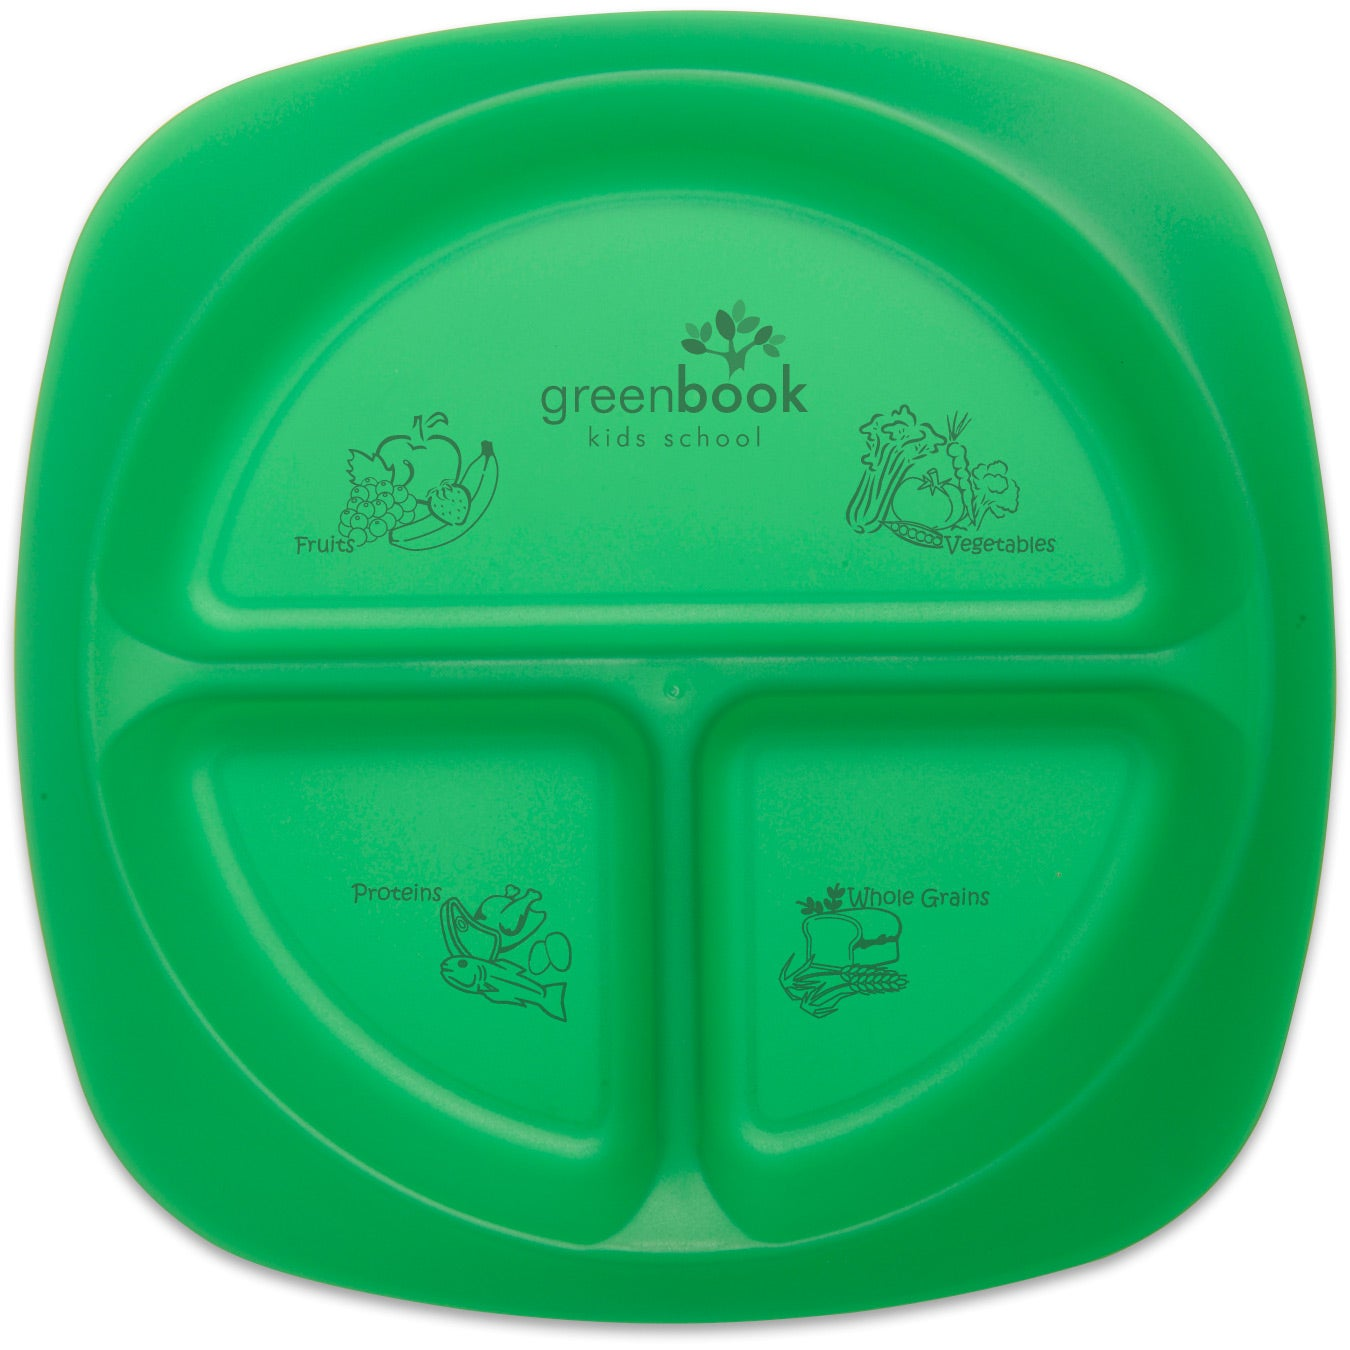 Children s portion plate trade show giveaways 1 65 ea